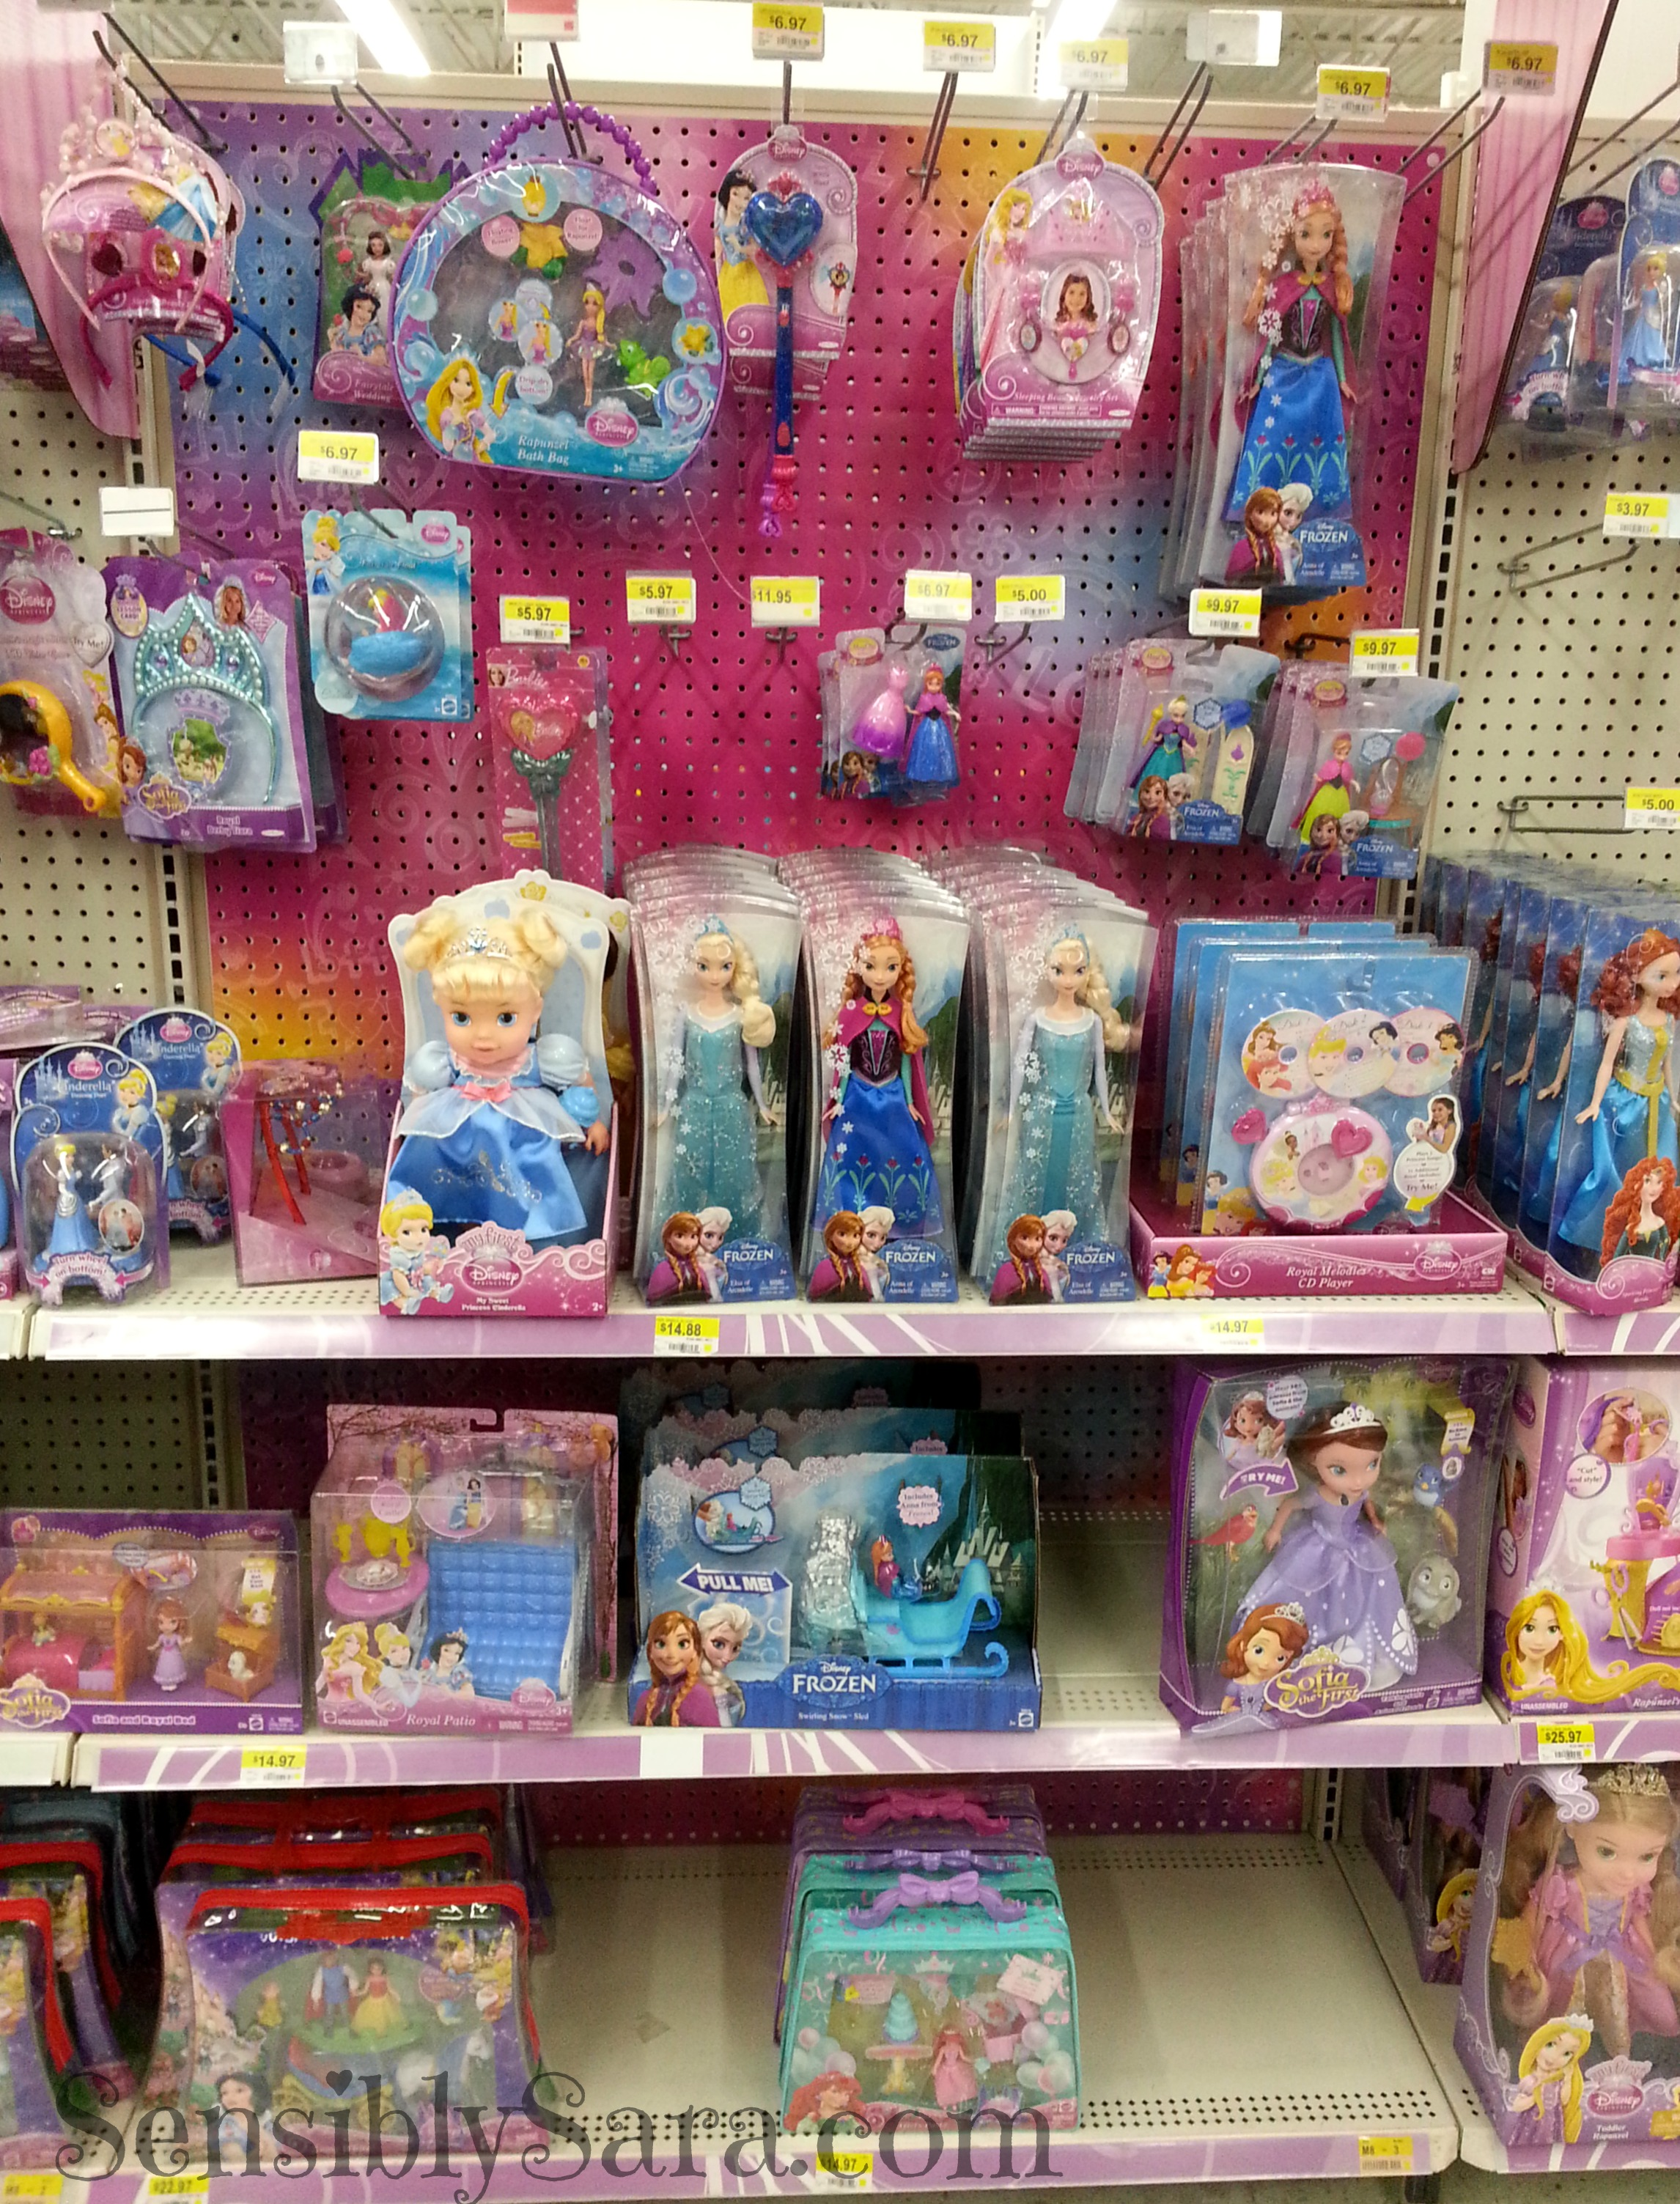 Walmart Toys For Girls : Disney frozen toys not just for girls frozenfun shop